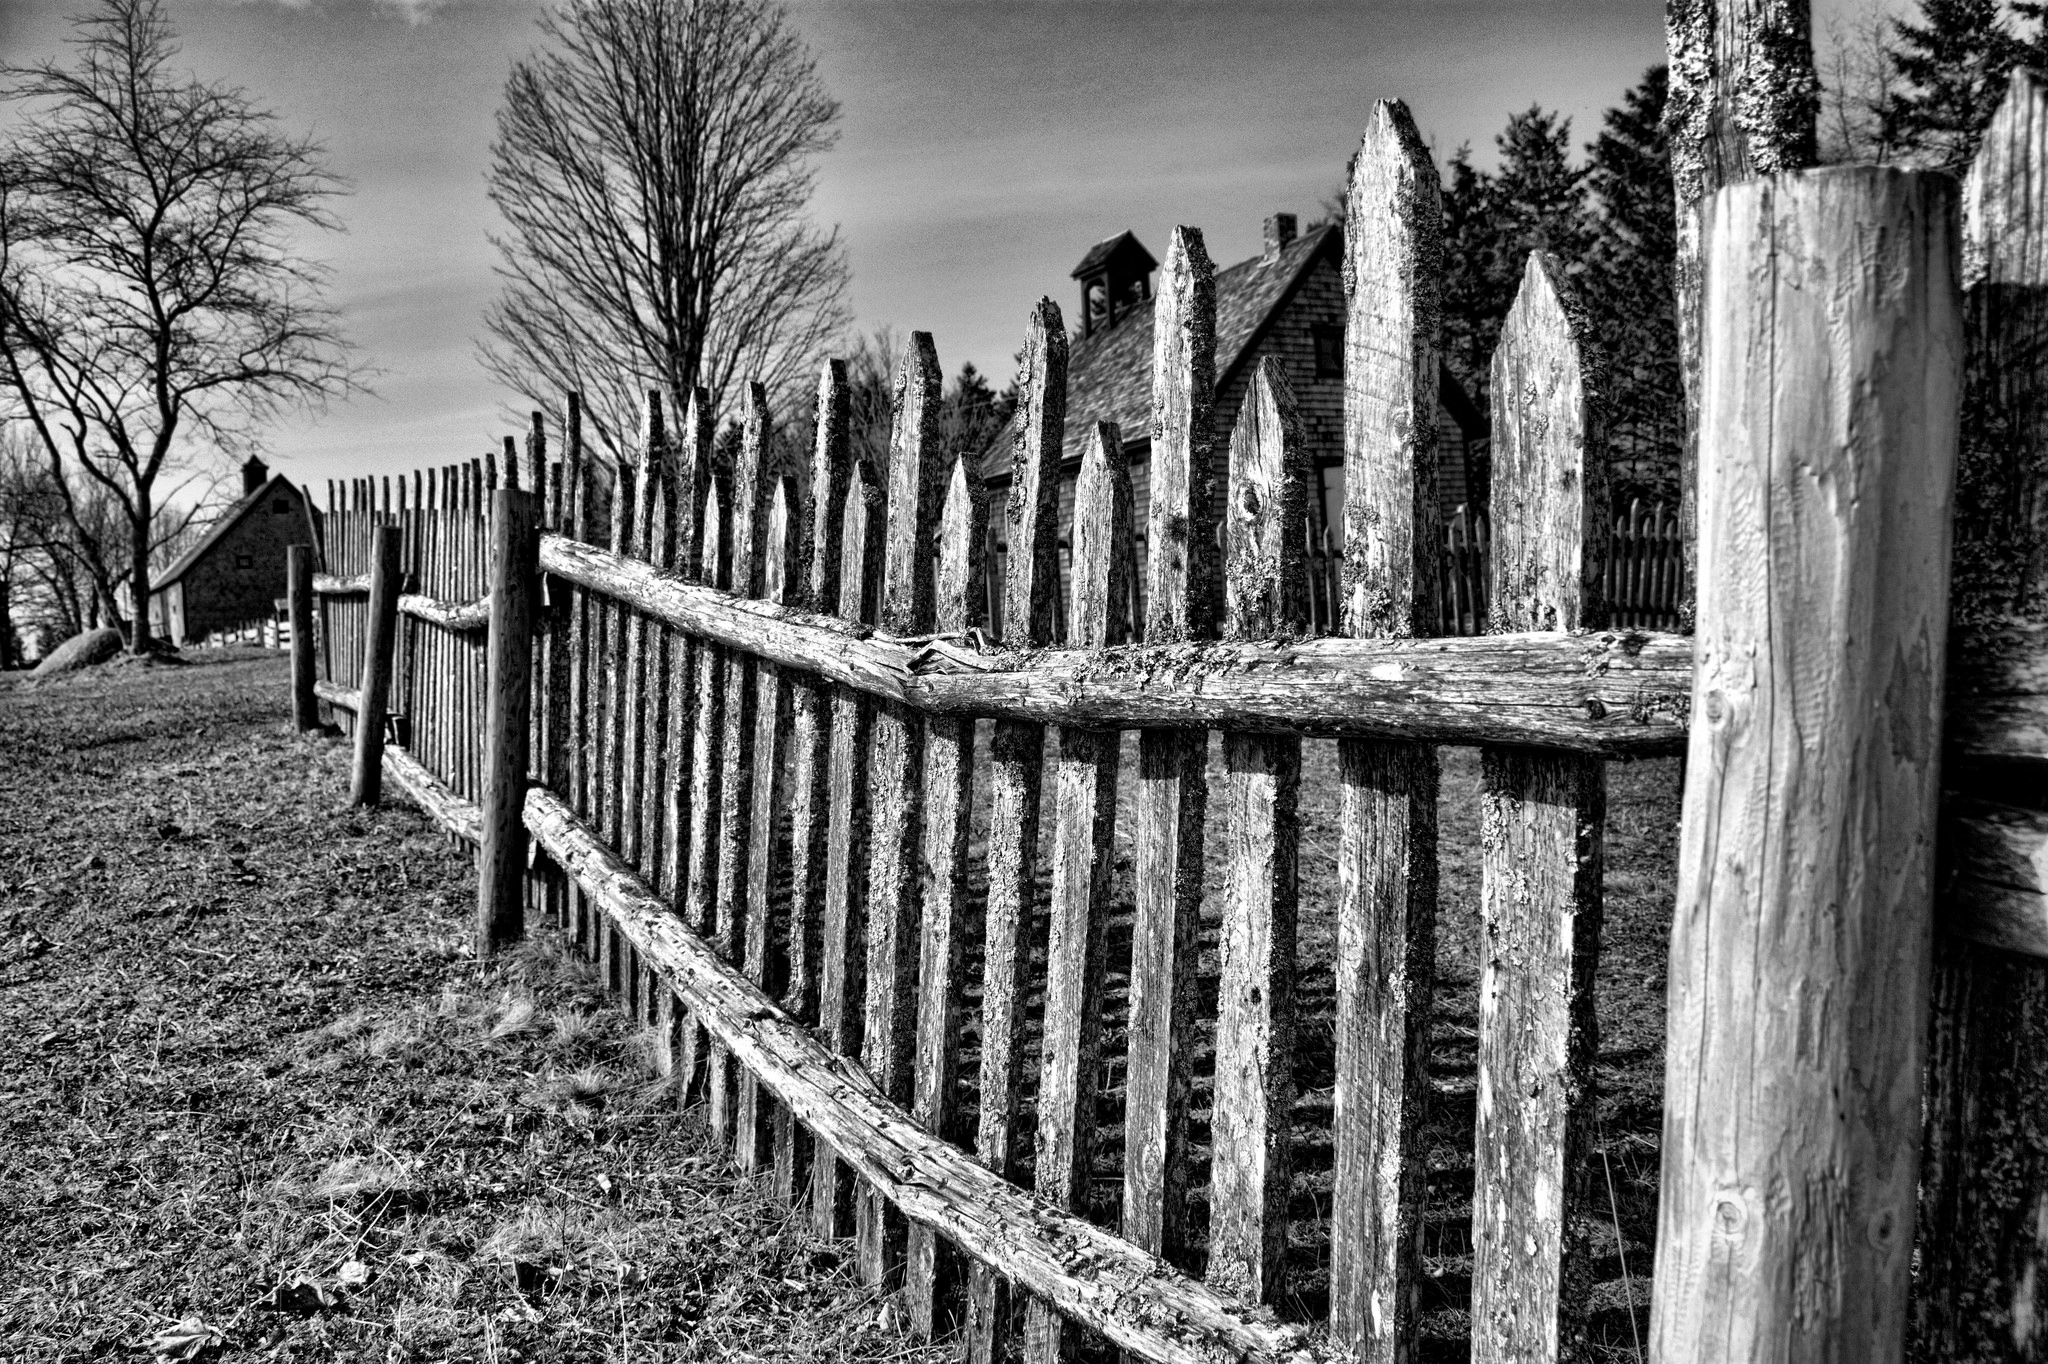 Boundaries and Fences